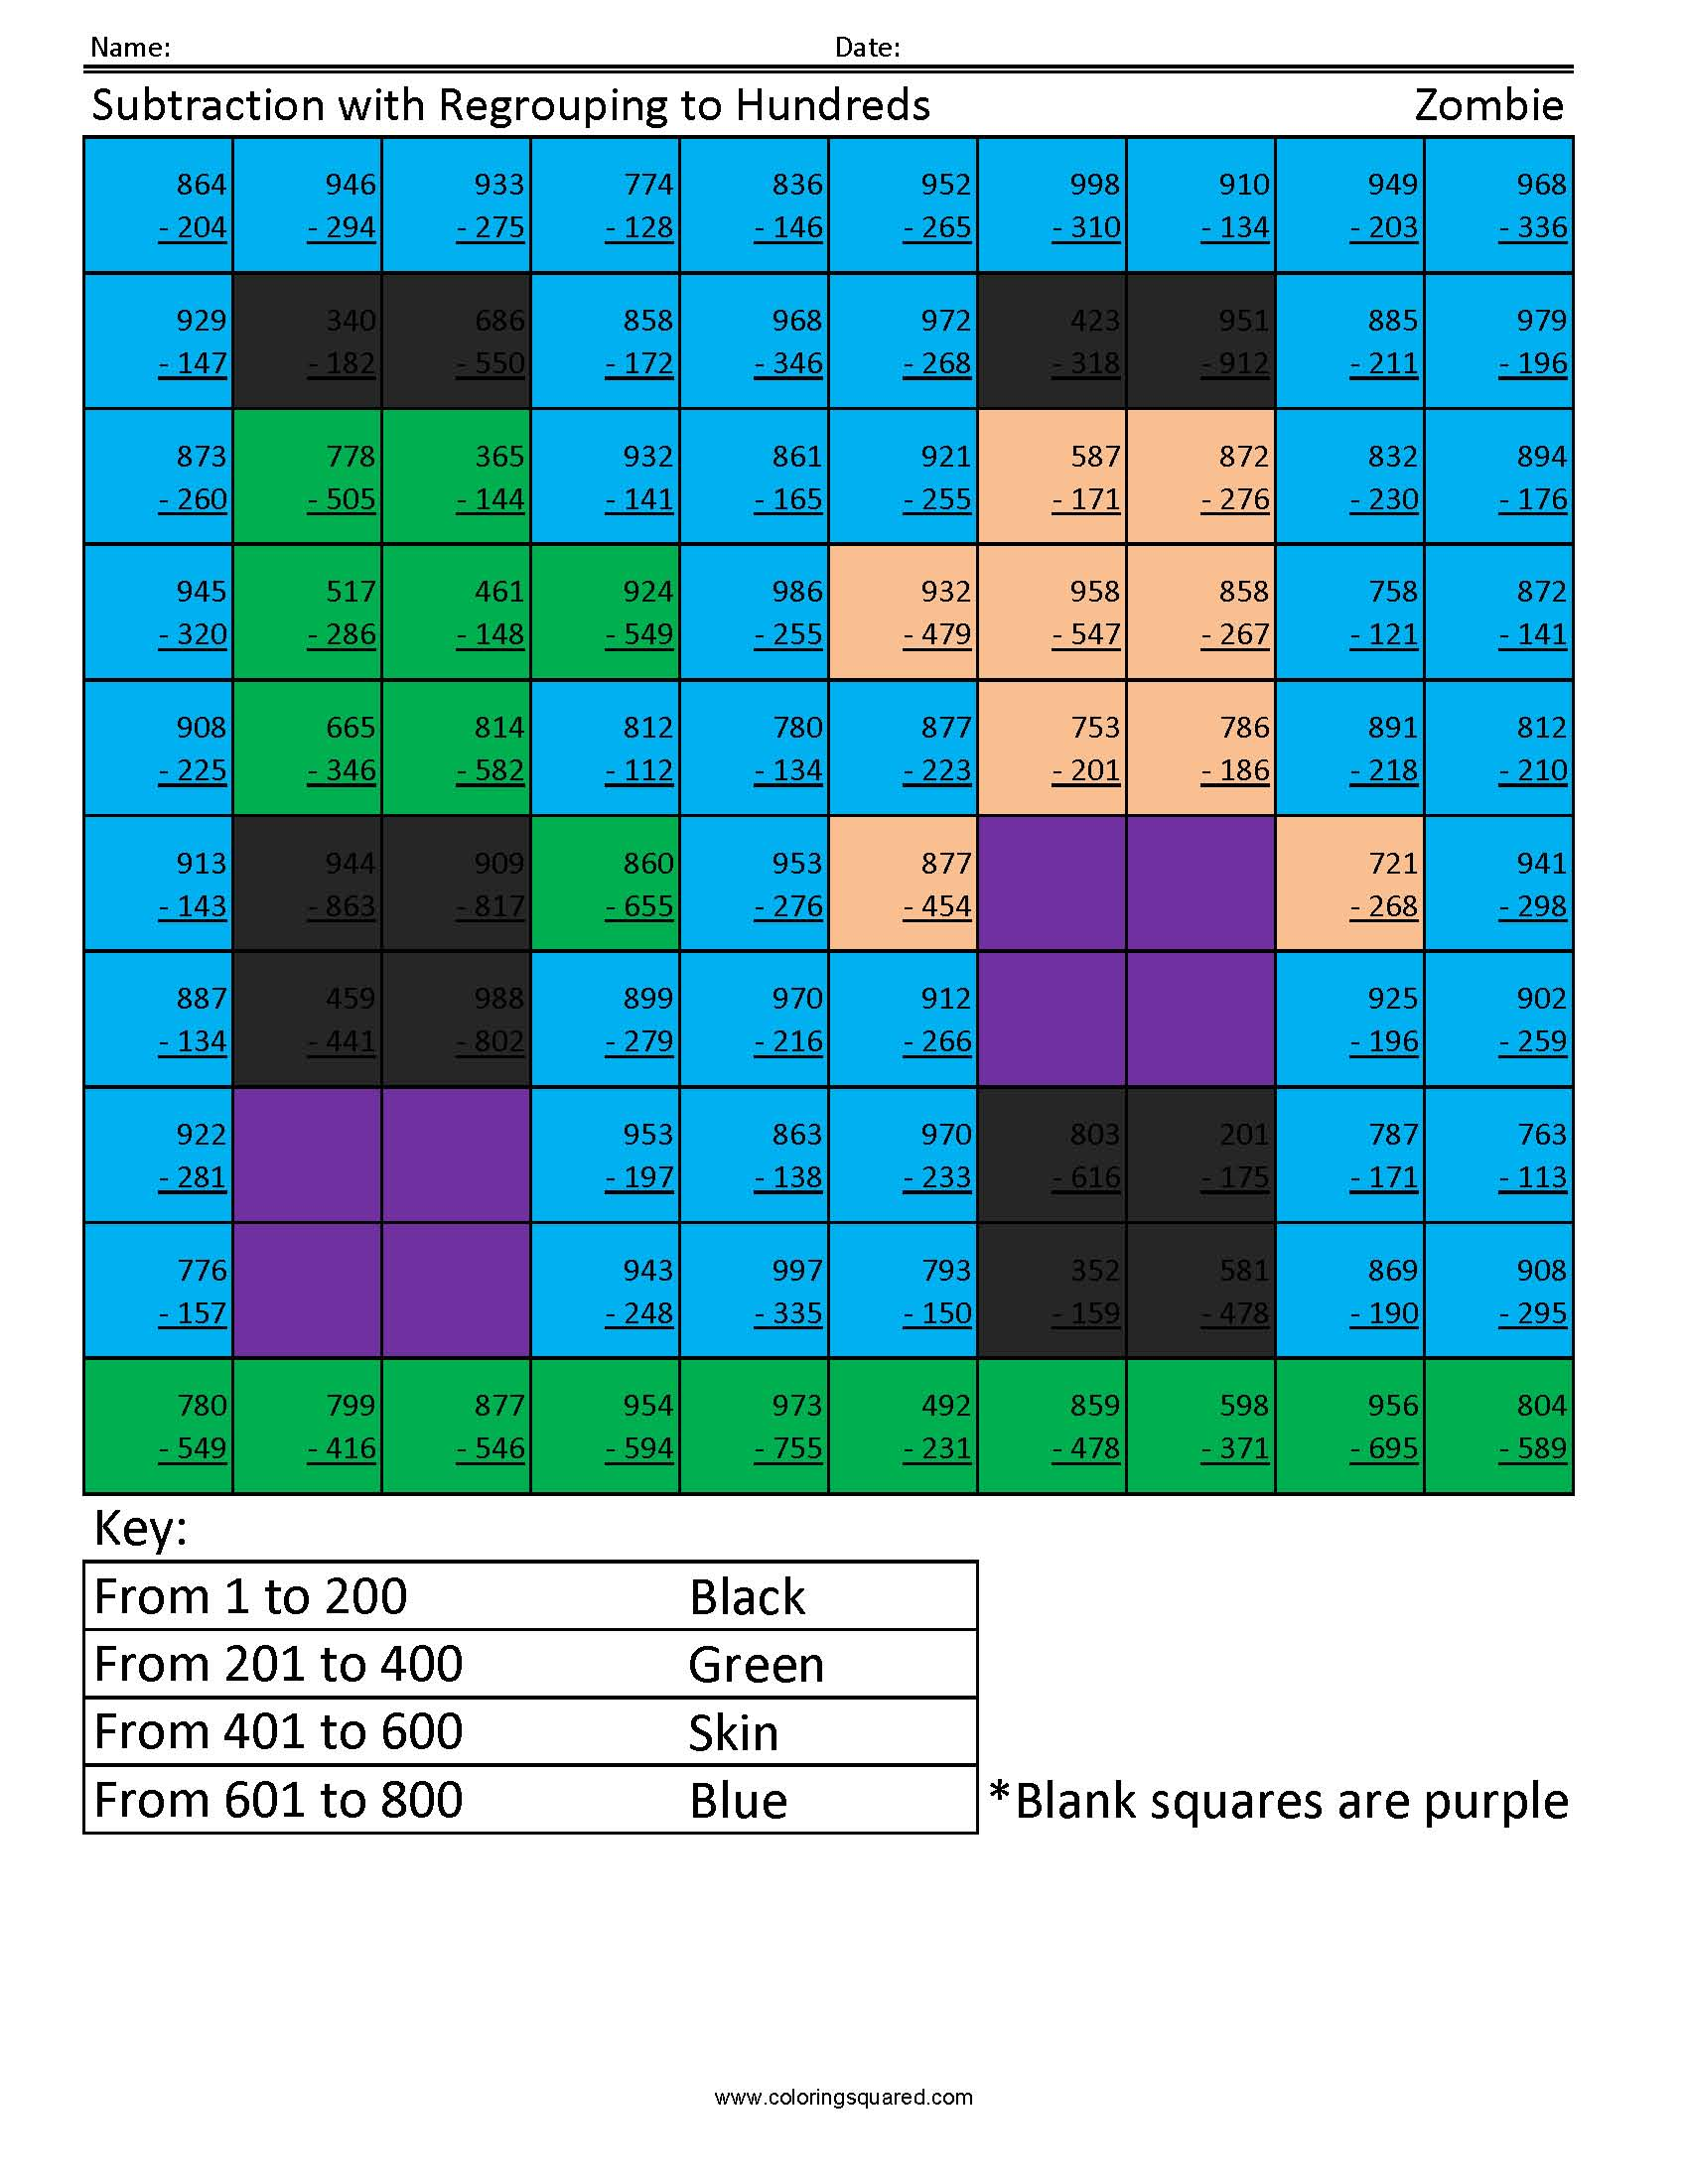 hight resolution of Subtraction with Regrouping- Zombie - Coloring Squared